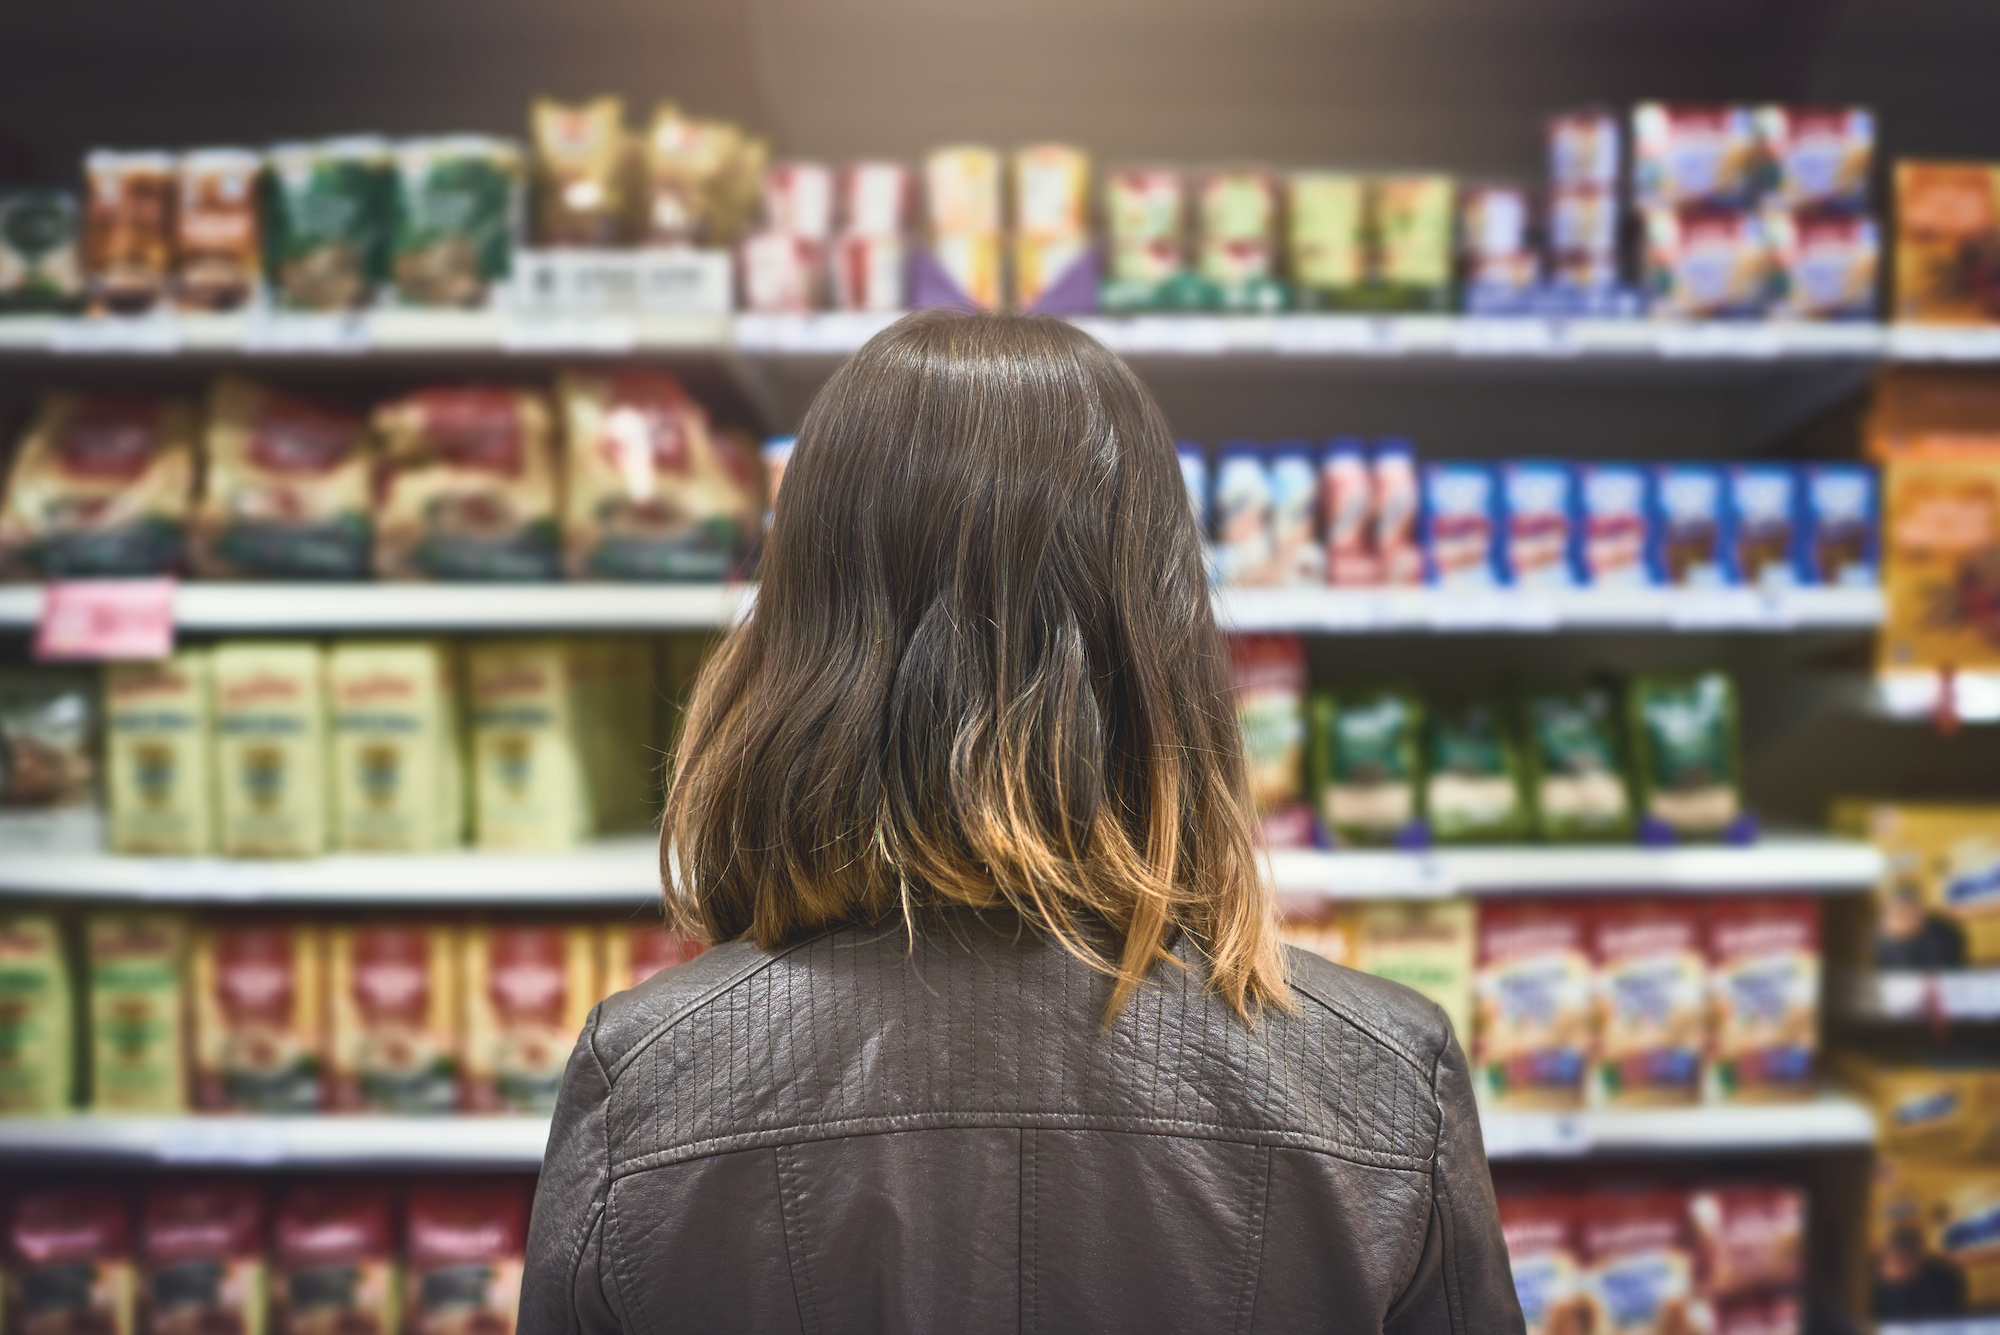 COVID-19 hurting Canadians' food security and mental health: StatCan